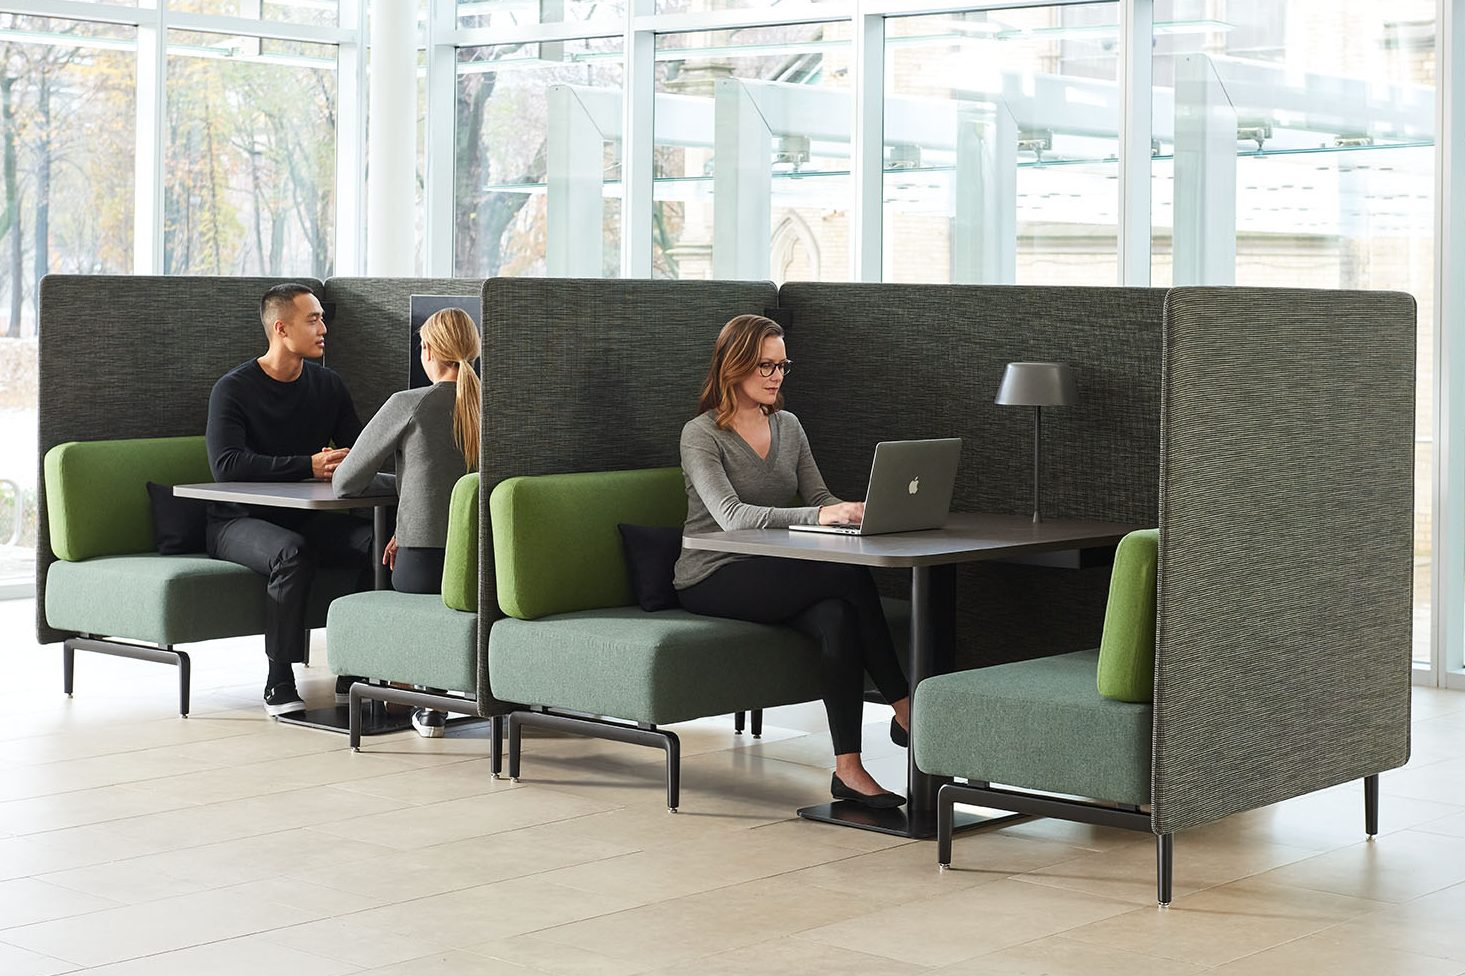 Banqs seating collection, comprising 2 benches, a table and 3/4 wraparound wall each